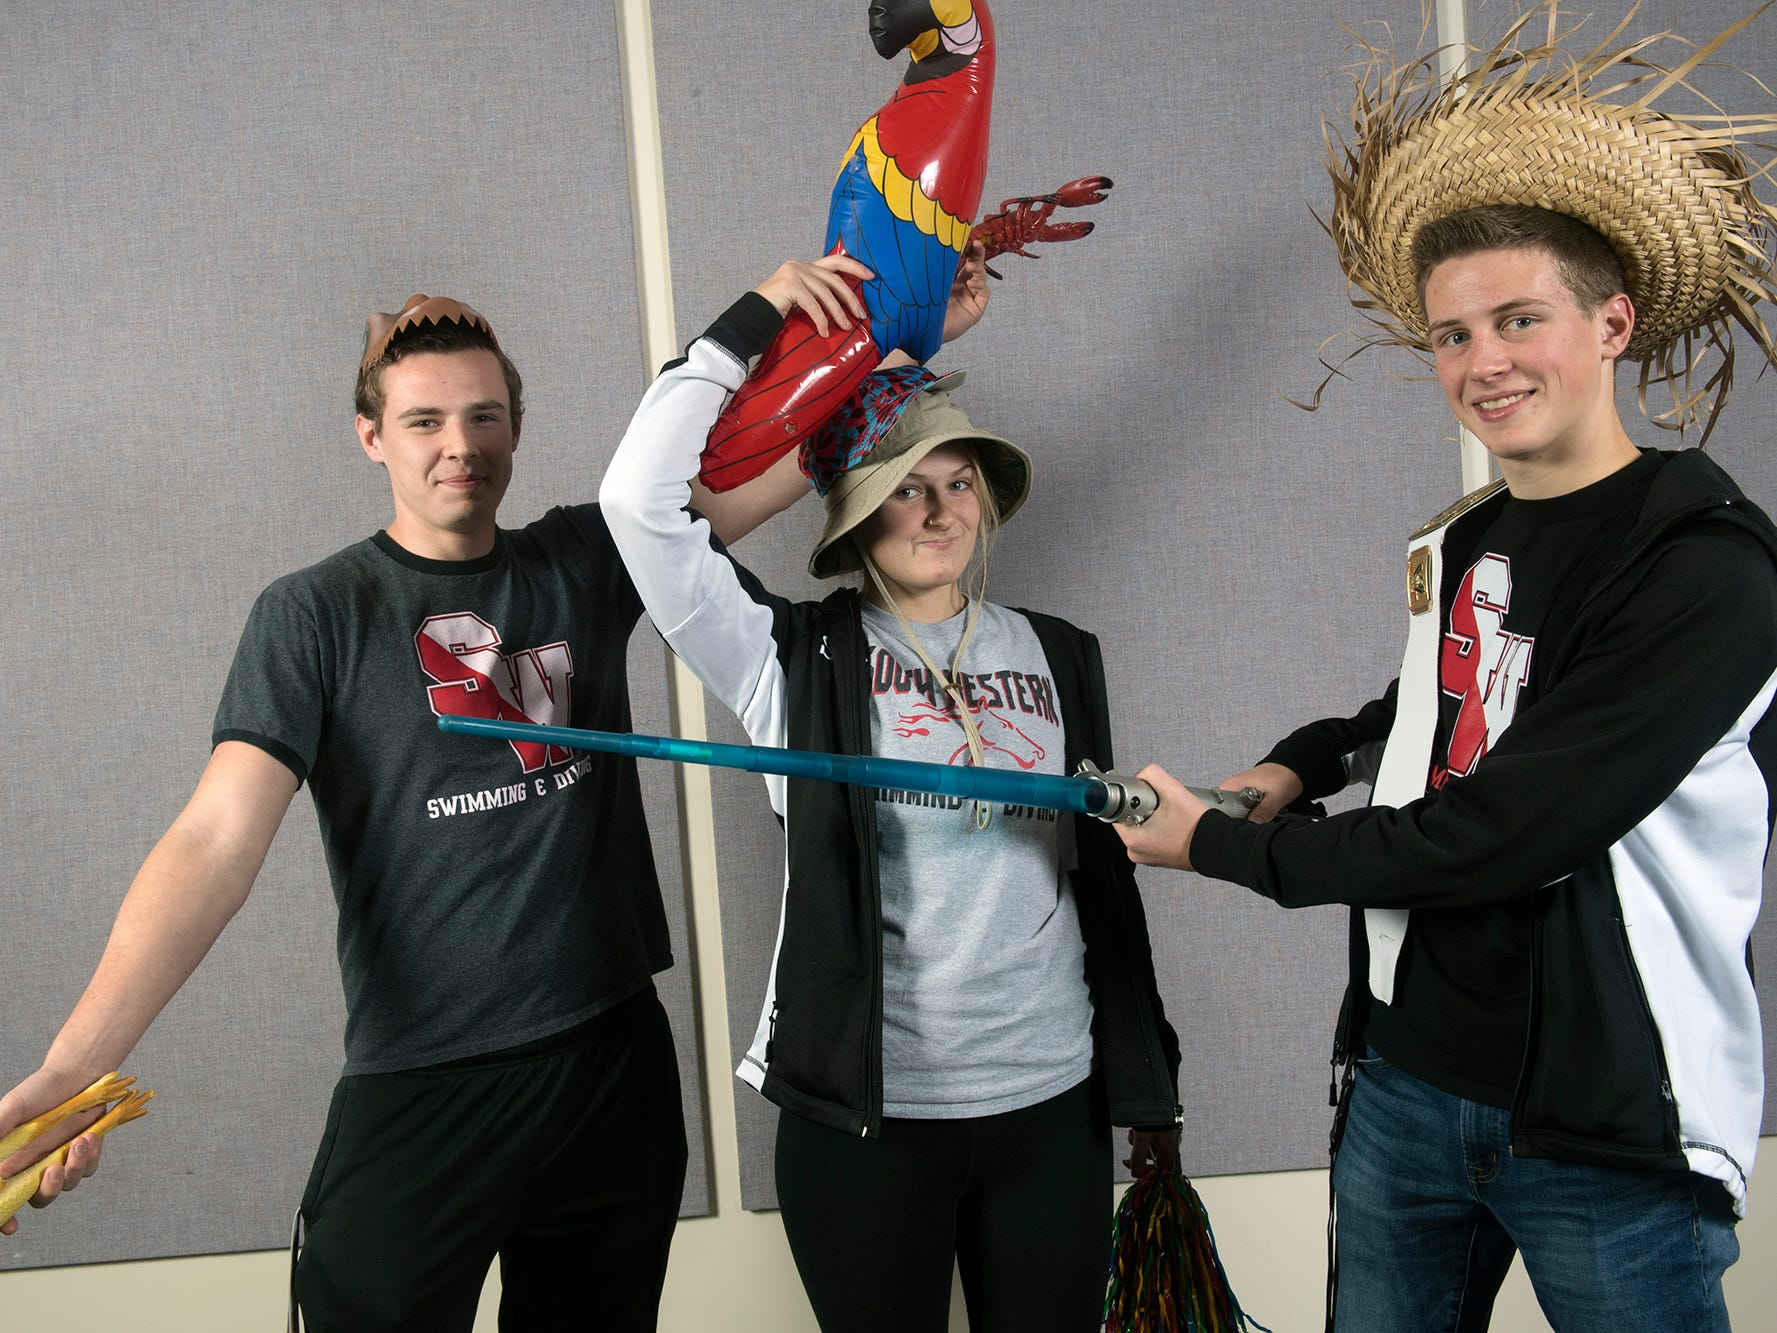 From the left, Todd Jones, Cara Green, and Ben Tilmes, of the South Western High School swim team, during the 2018-19 GameTimePa YAIAA Winter Media Day Sunday November 11, 2018.